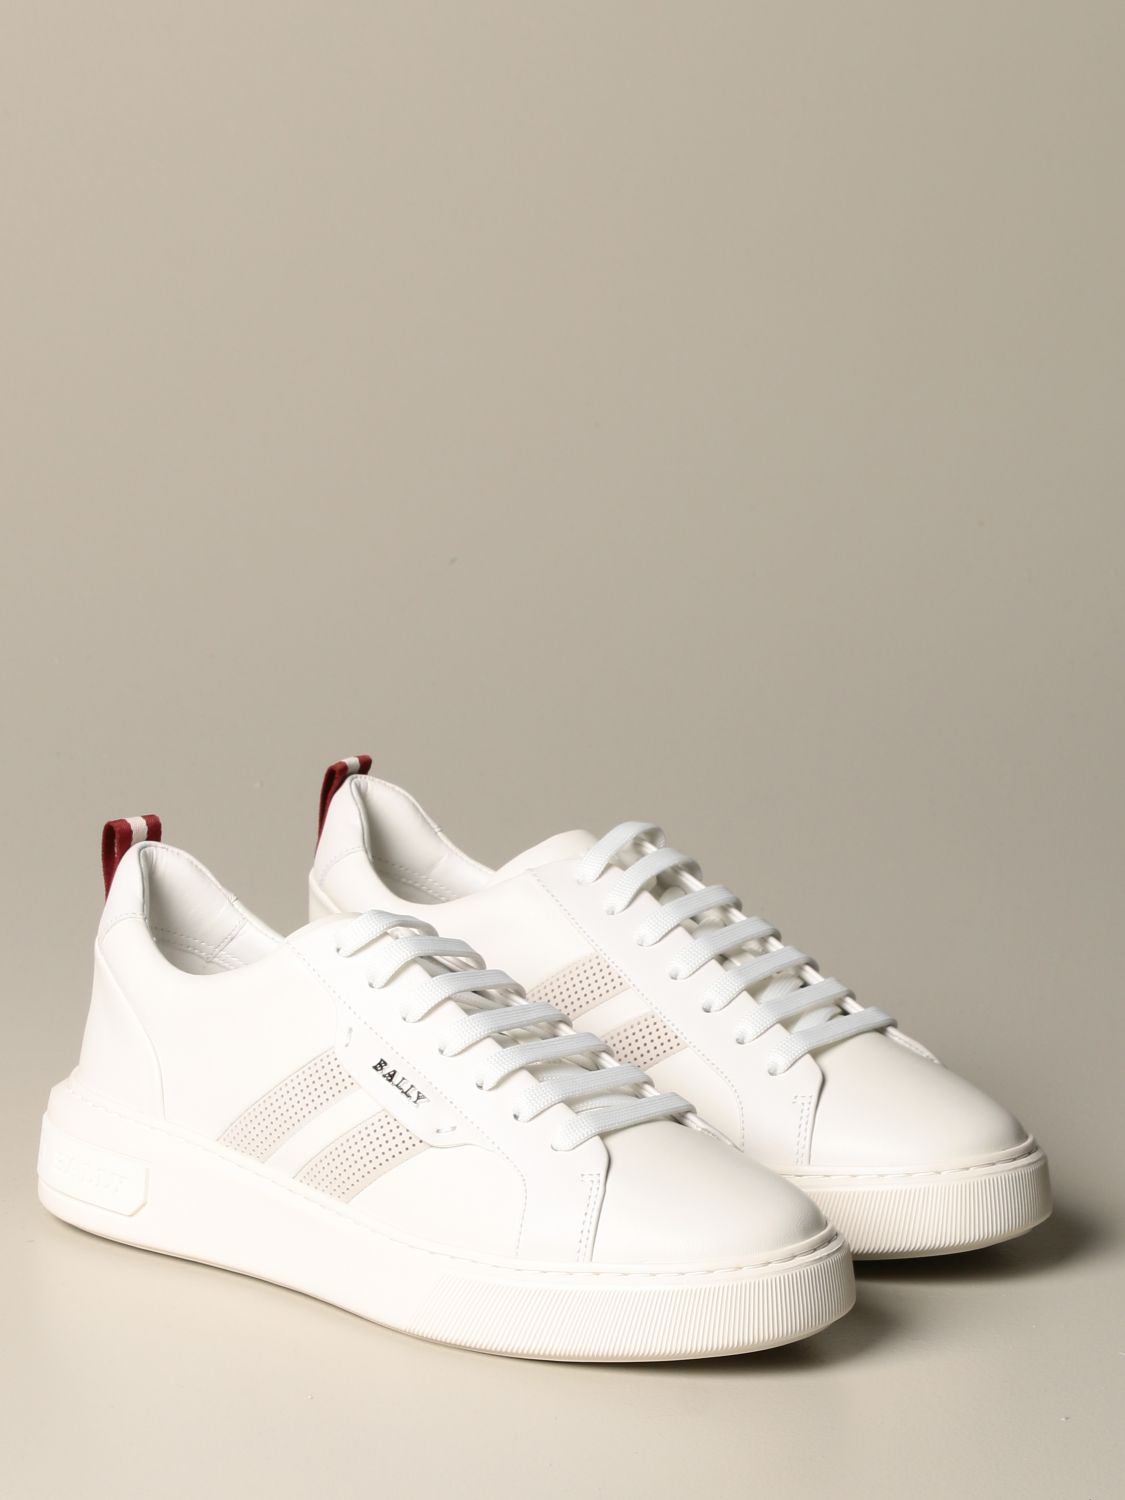 Sneakers Bally: Maxim Bally sneakers in leather with trainspotting band white 2